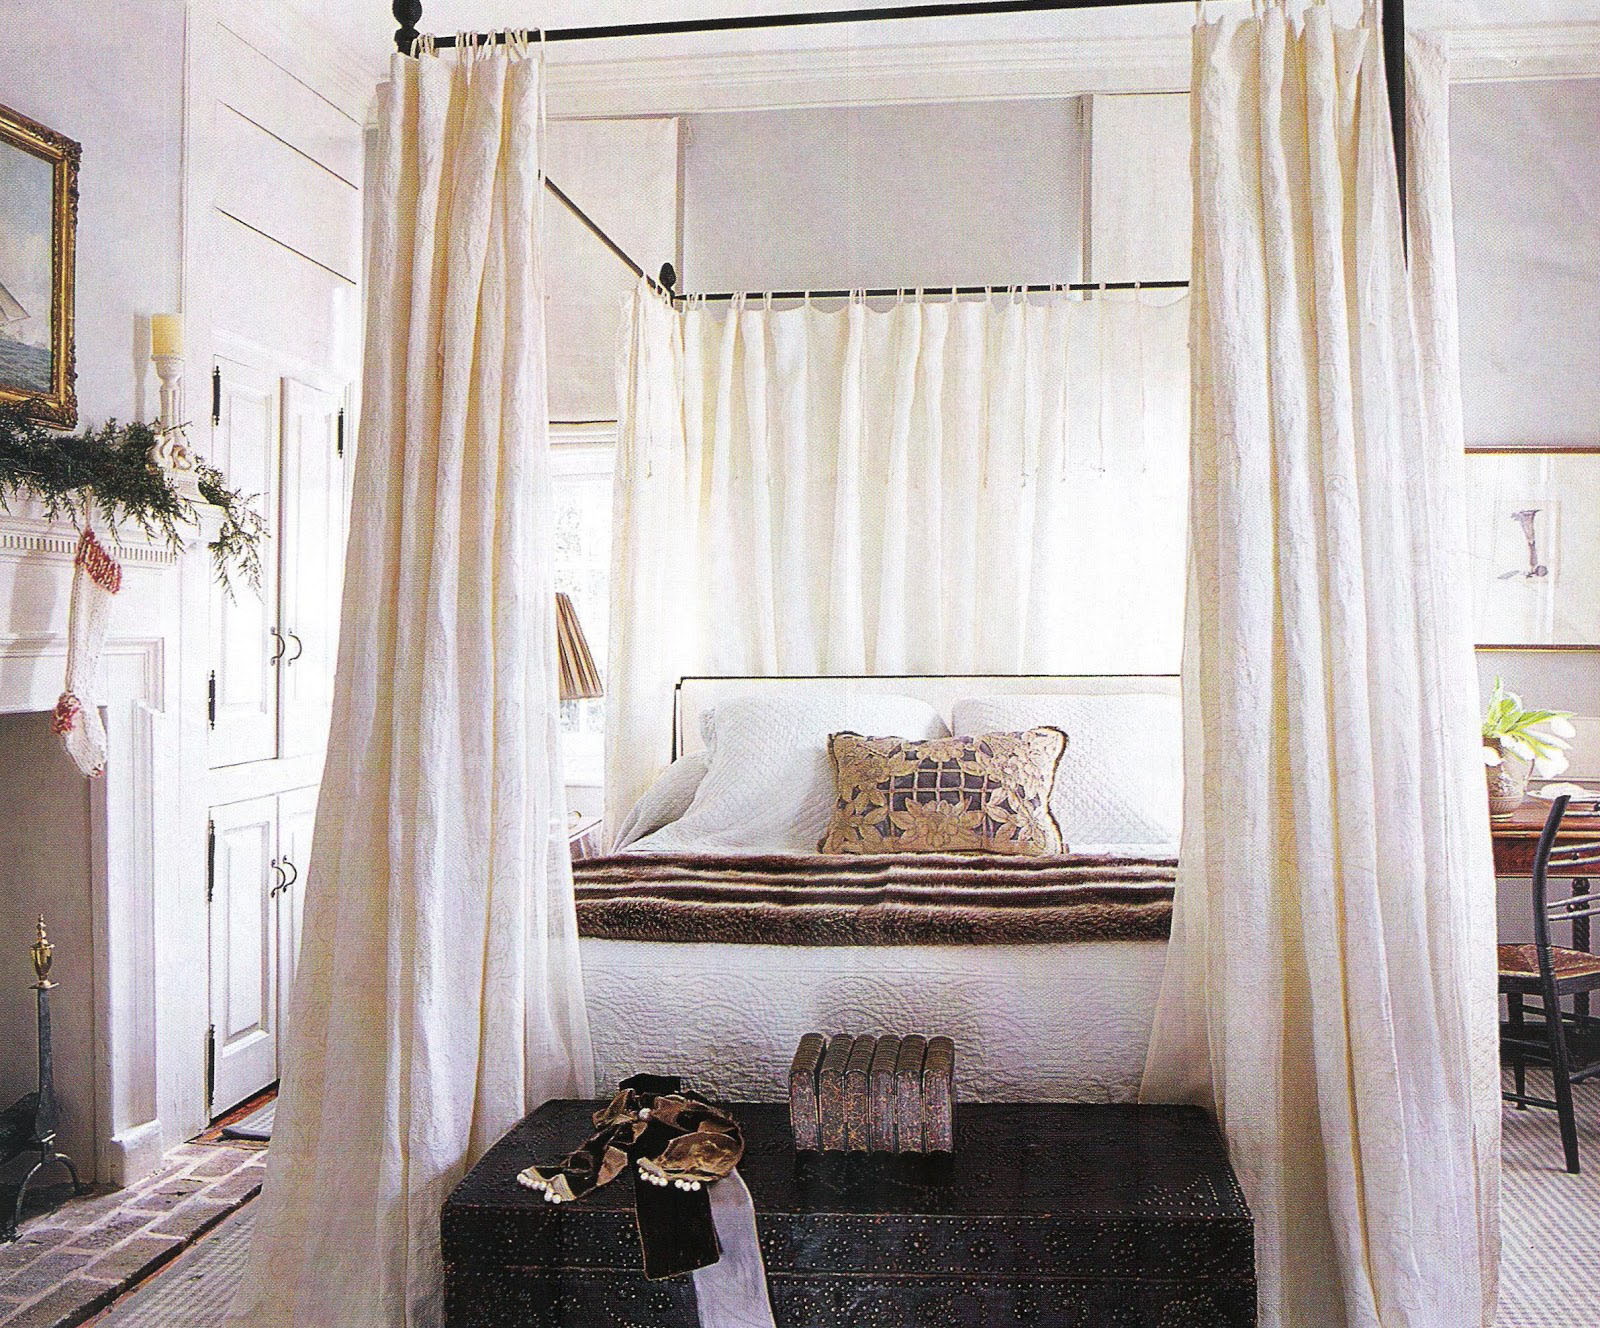 4 Poster Canopy King Bed Canopy Beds 40 Stunning Bedrooms